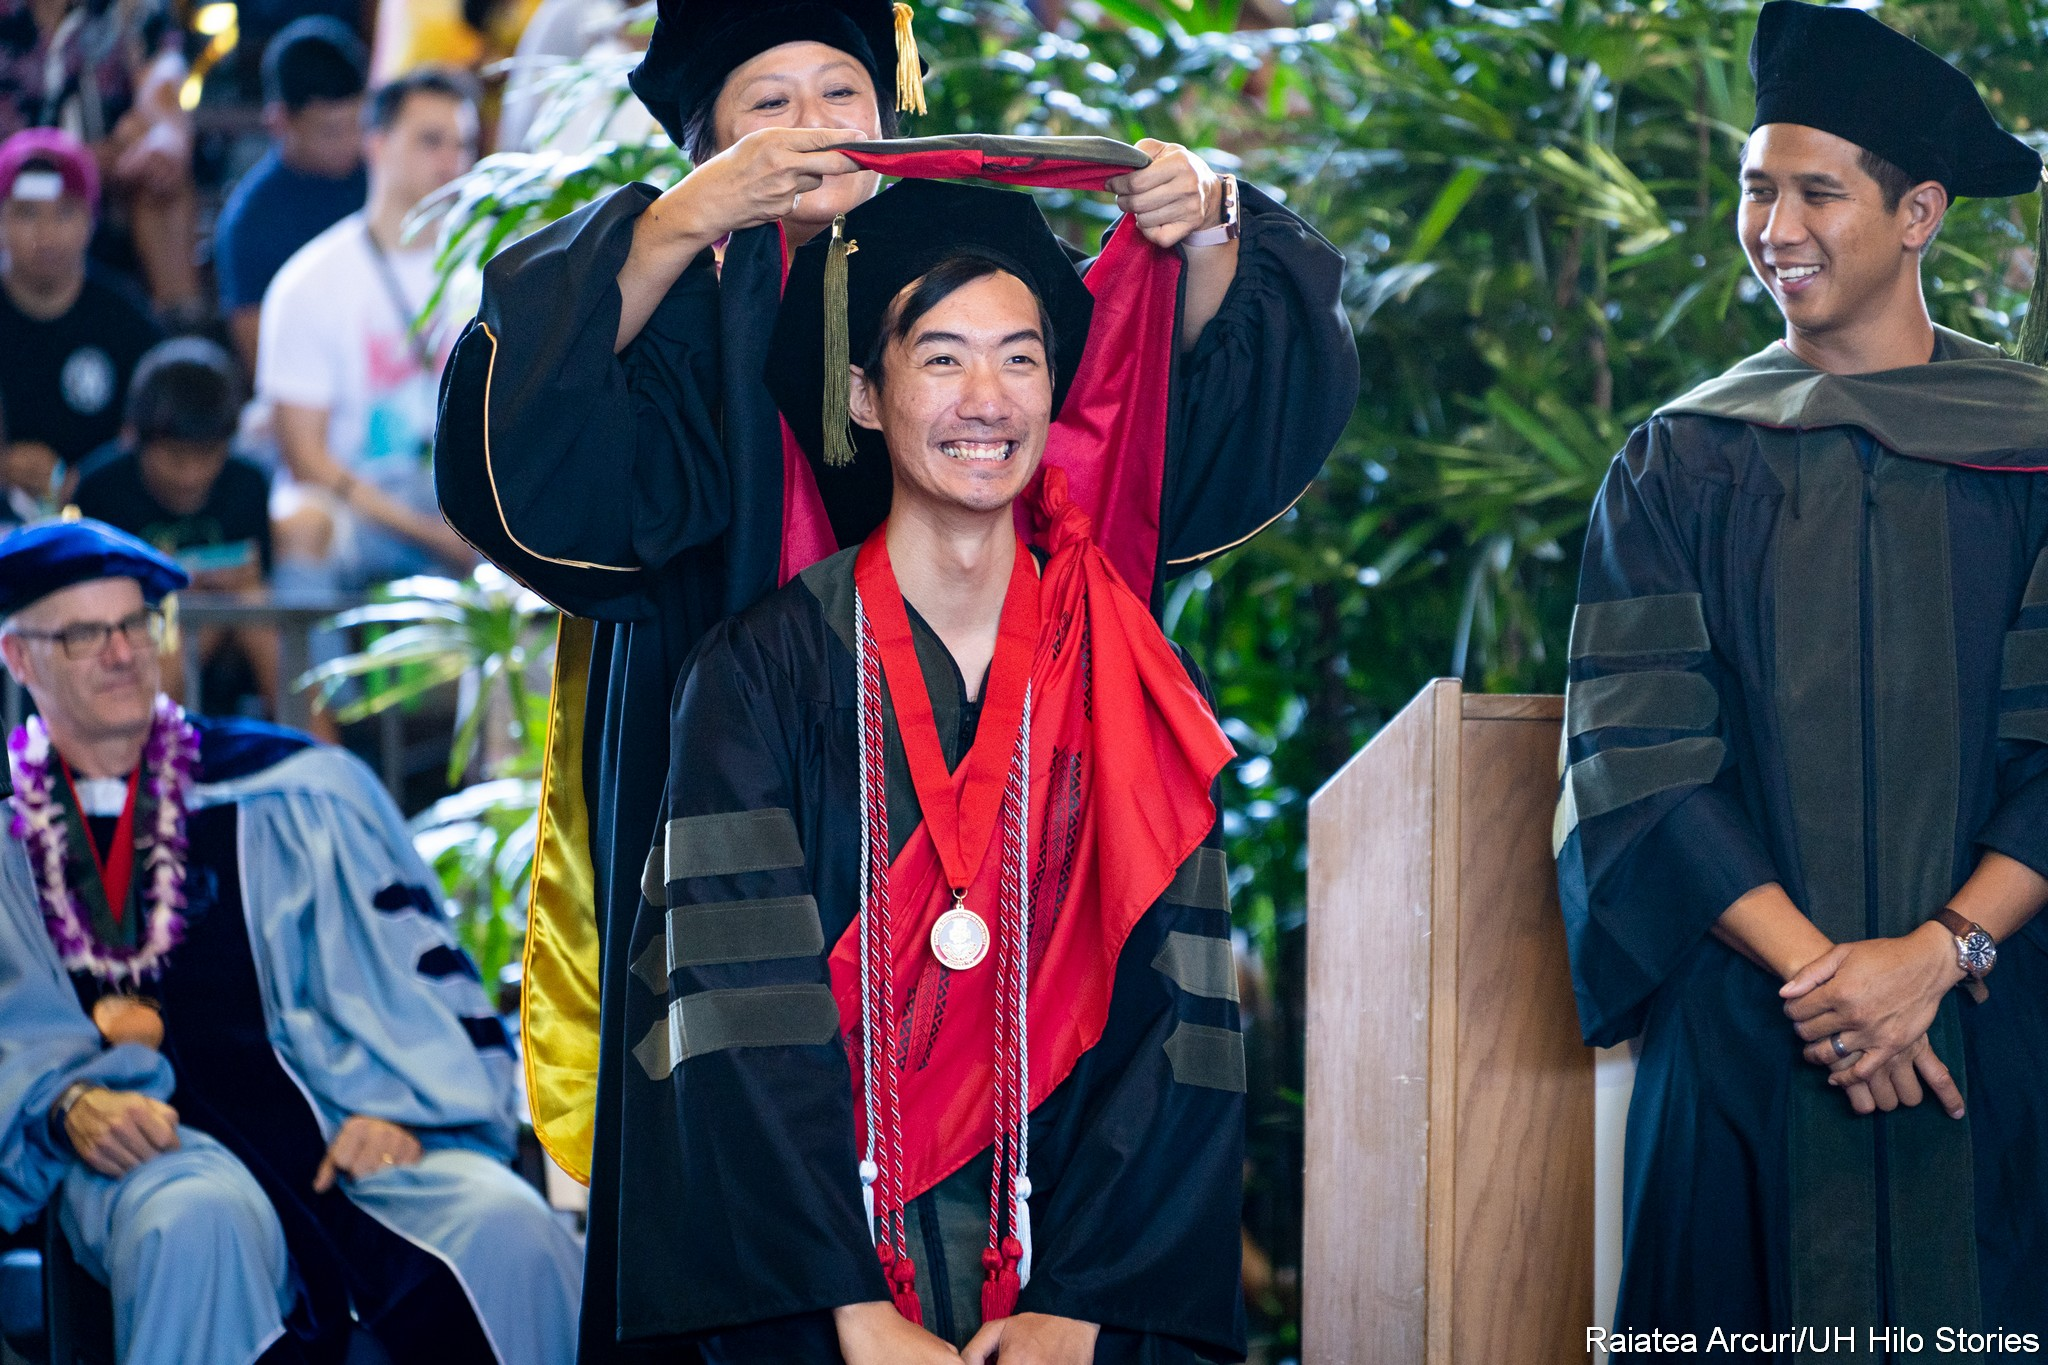 Male graduate stands with knees bent as dean places hood.